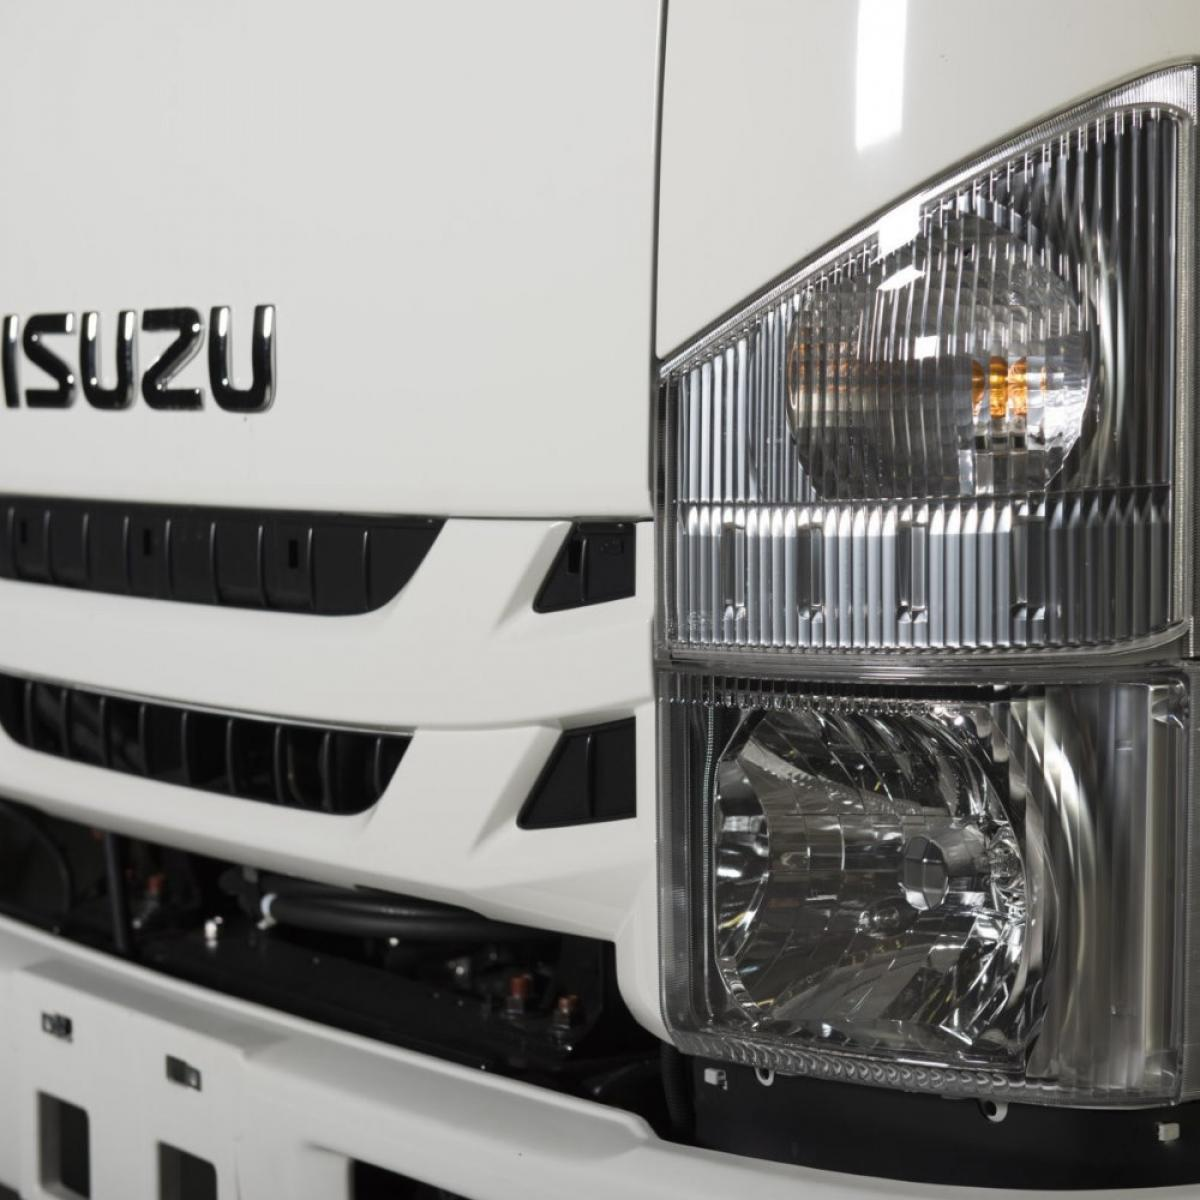 Isuzu M21 Active